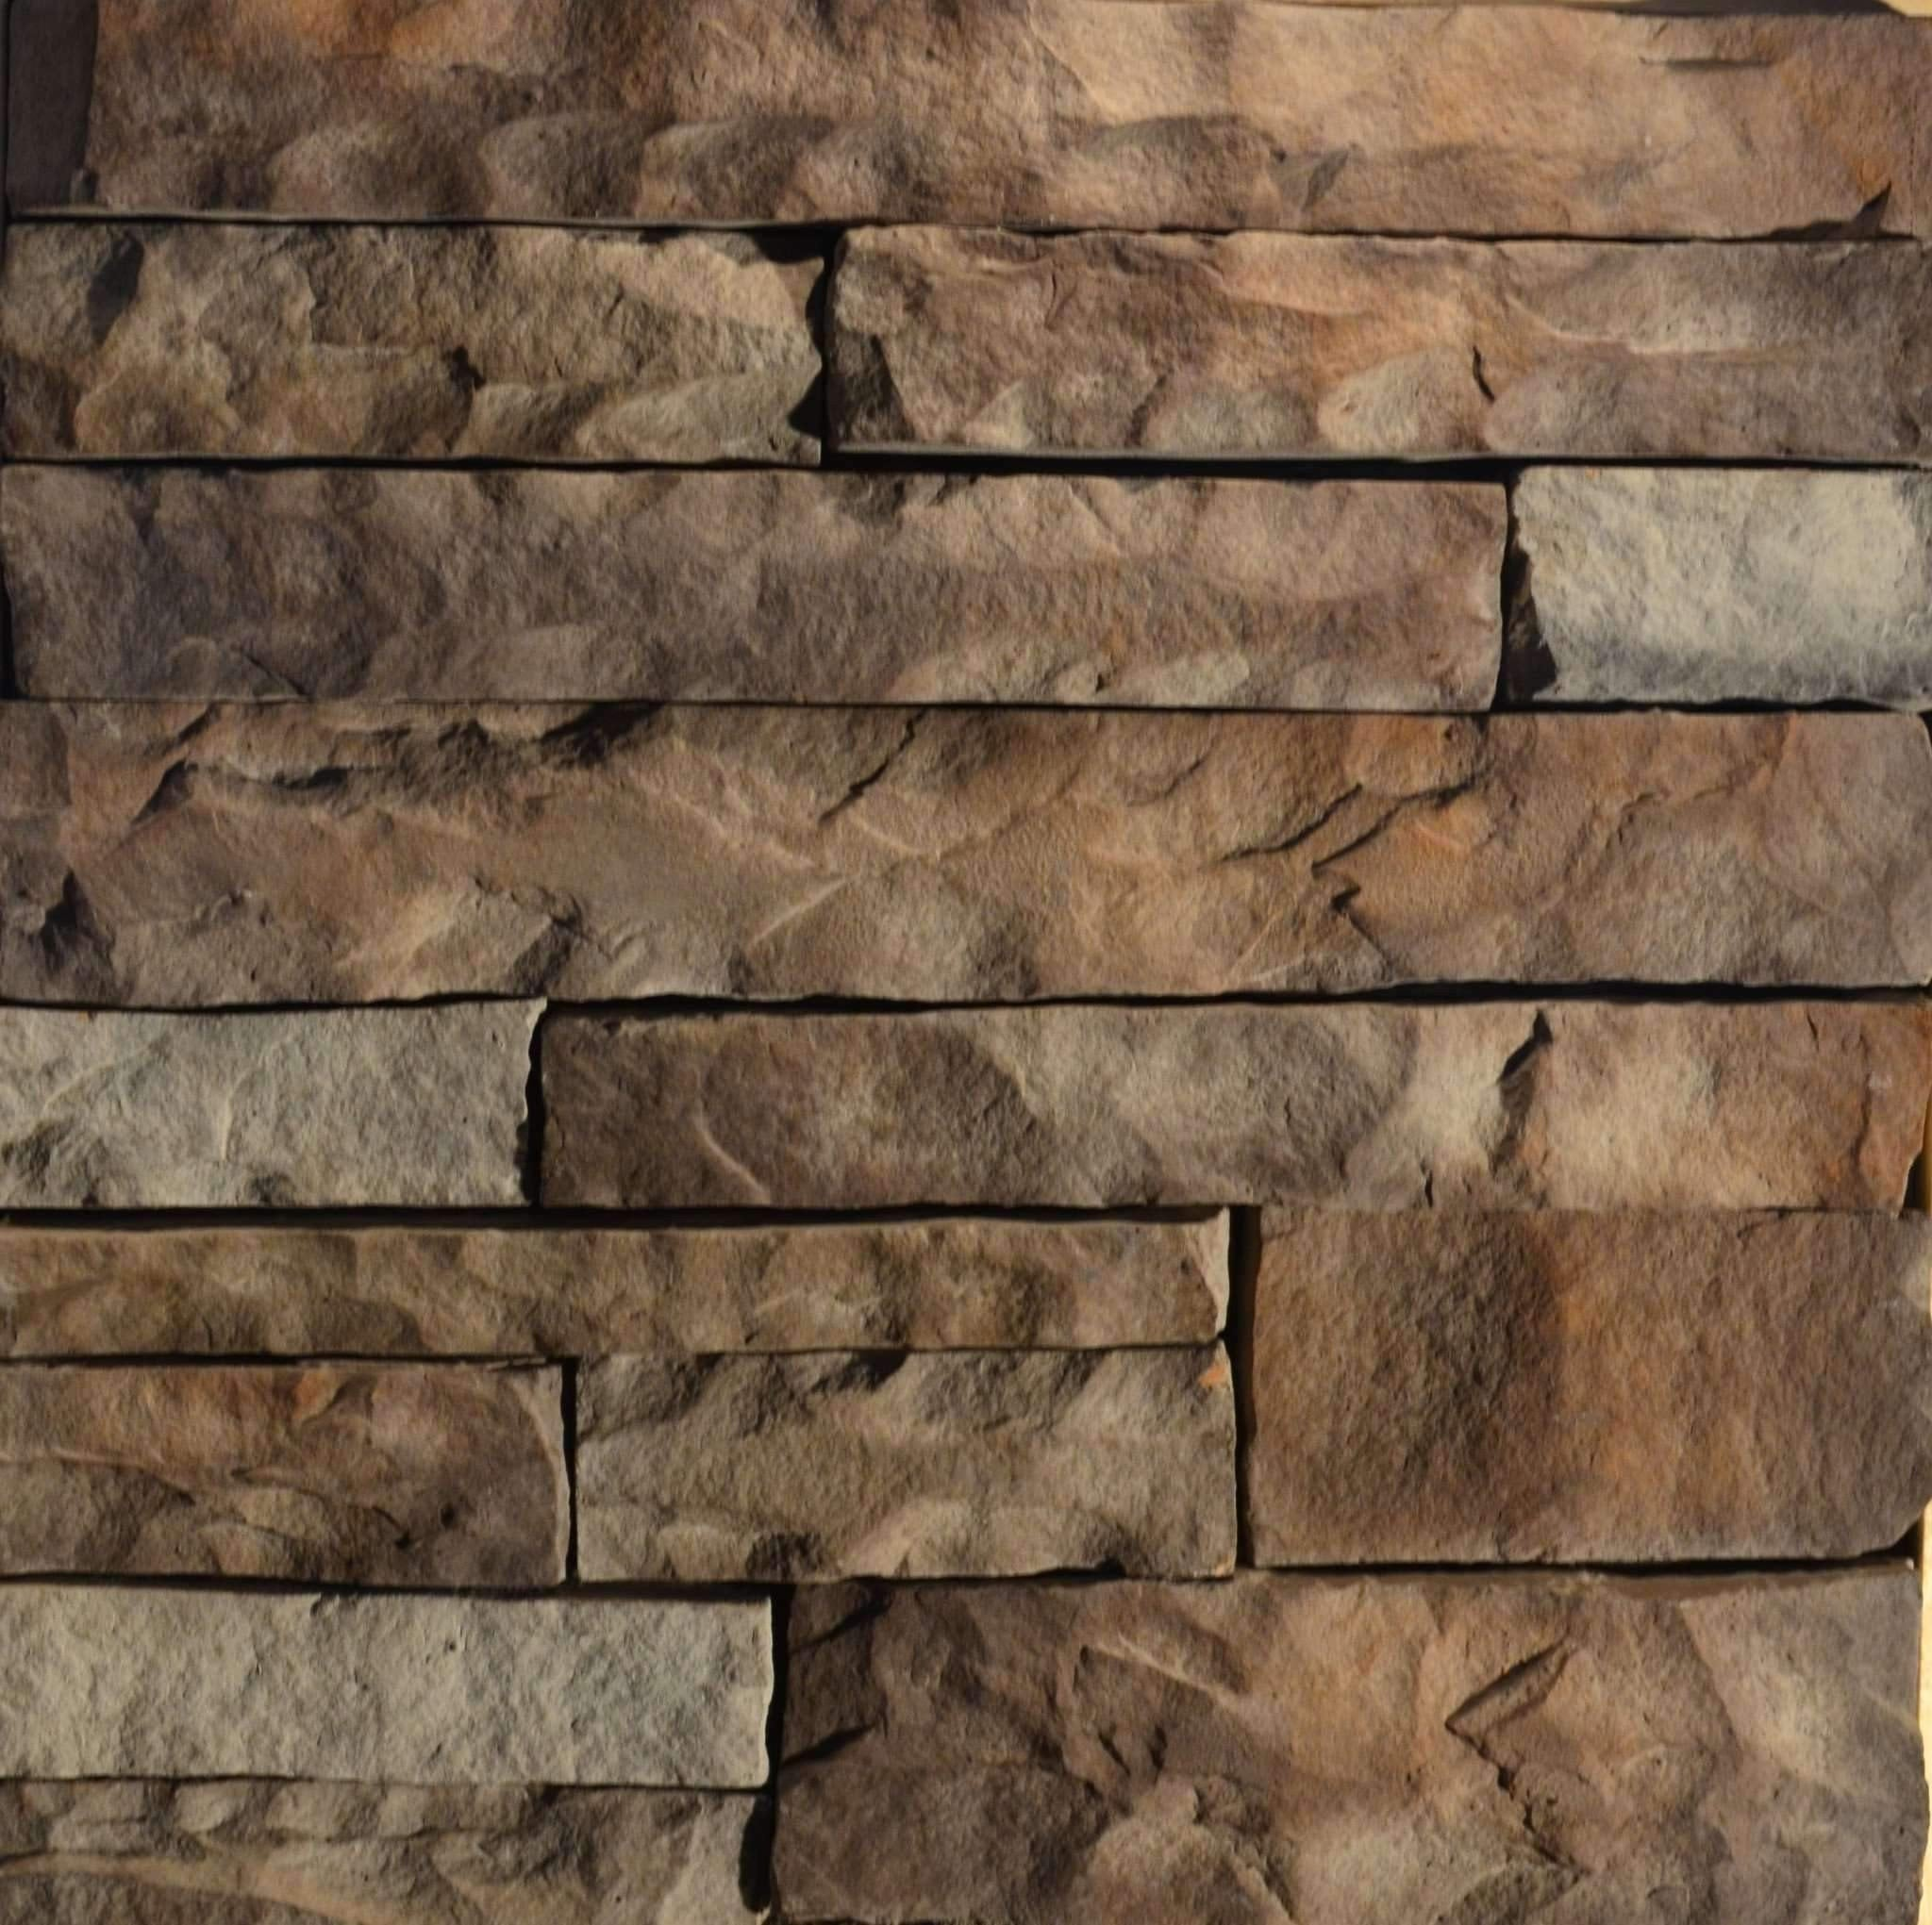 Shasta - European Stackstone cheap stone veneer clearance - Discount Stones wholesale stone veneer, cheap brick veneer, cultured stone for sale